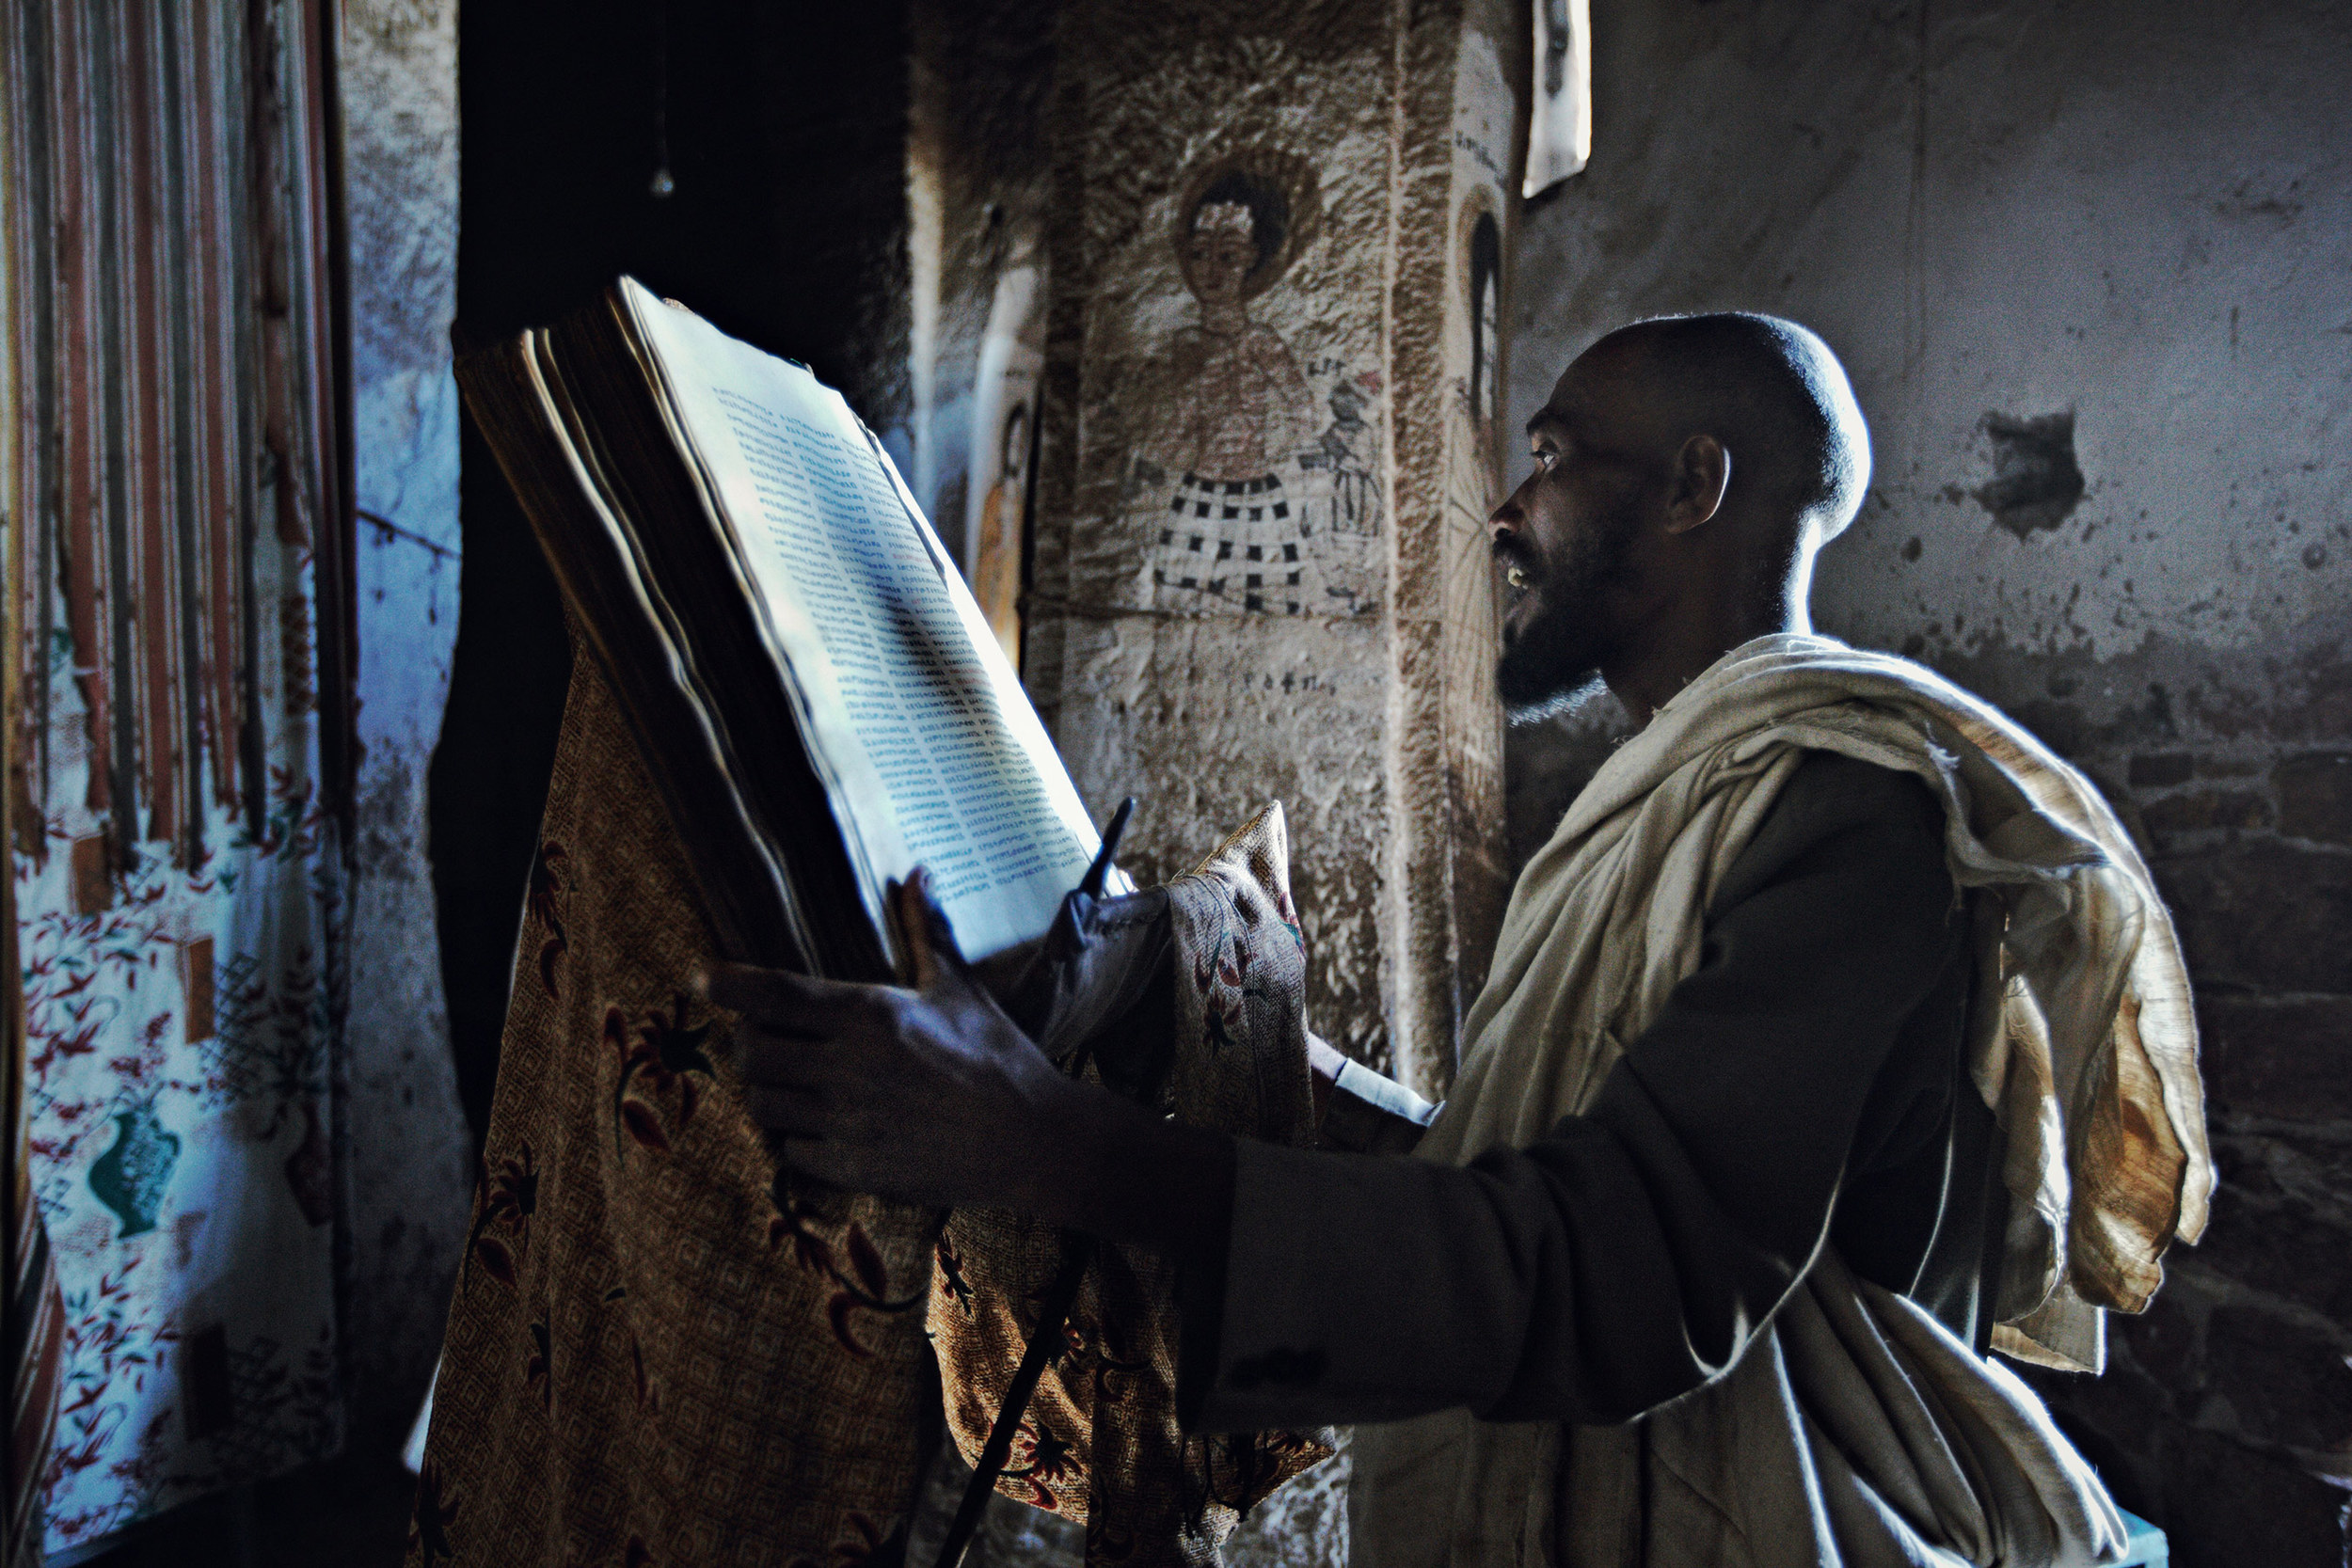 Ethiopian Orthodox Christian man reading from a prayer book